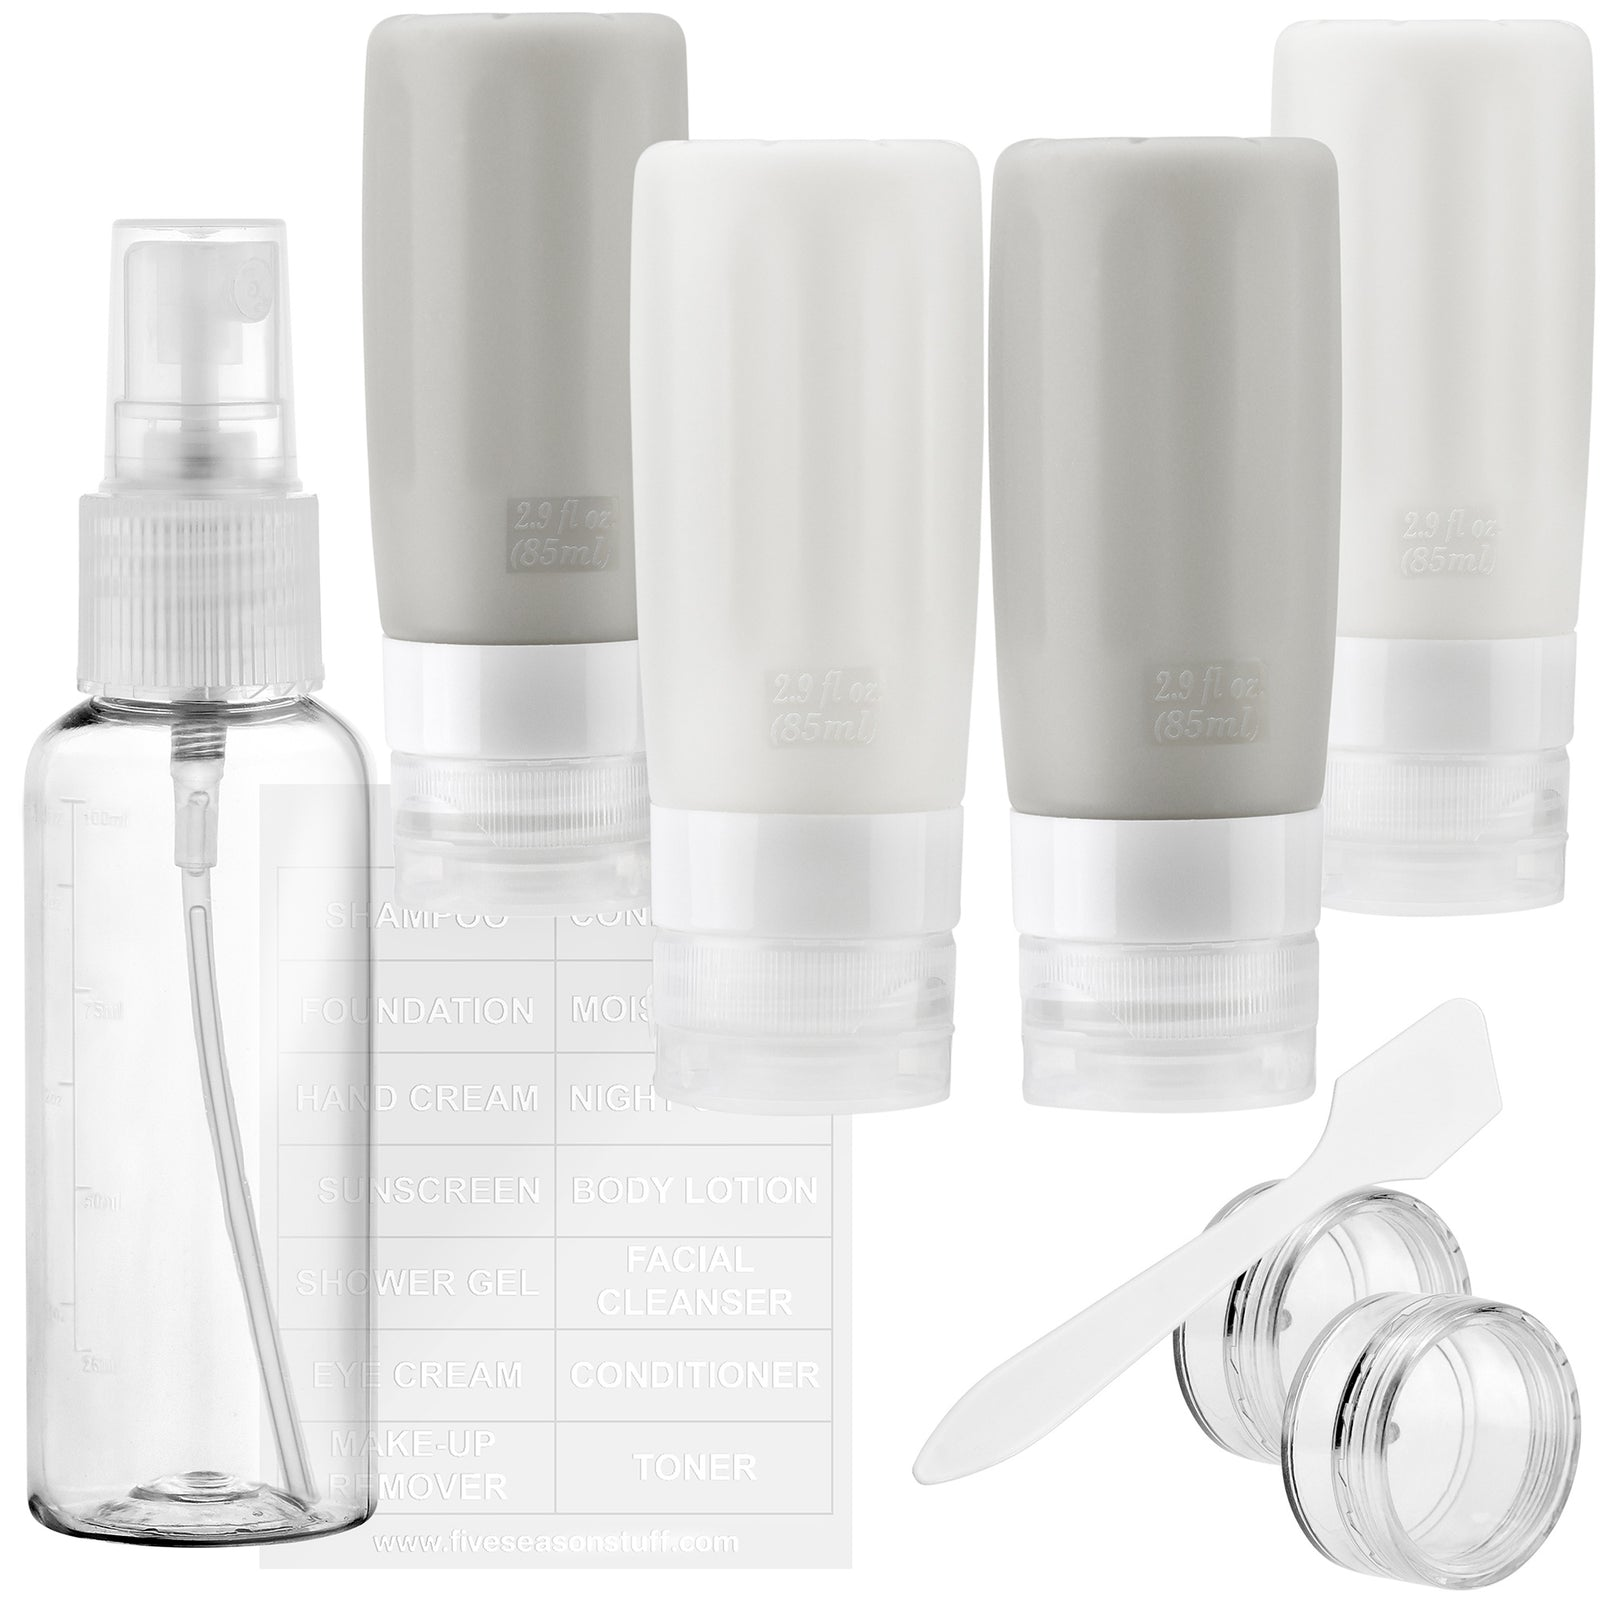 FiveSeasonStuff TSA Approved Silicone Leak Proof Travel Squeeze Bottles and Travel Spray Bottle with TSA Toiletry Bag (7 Pack) Posh (Gray & White)